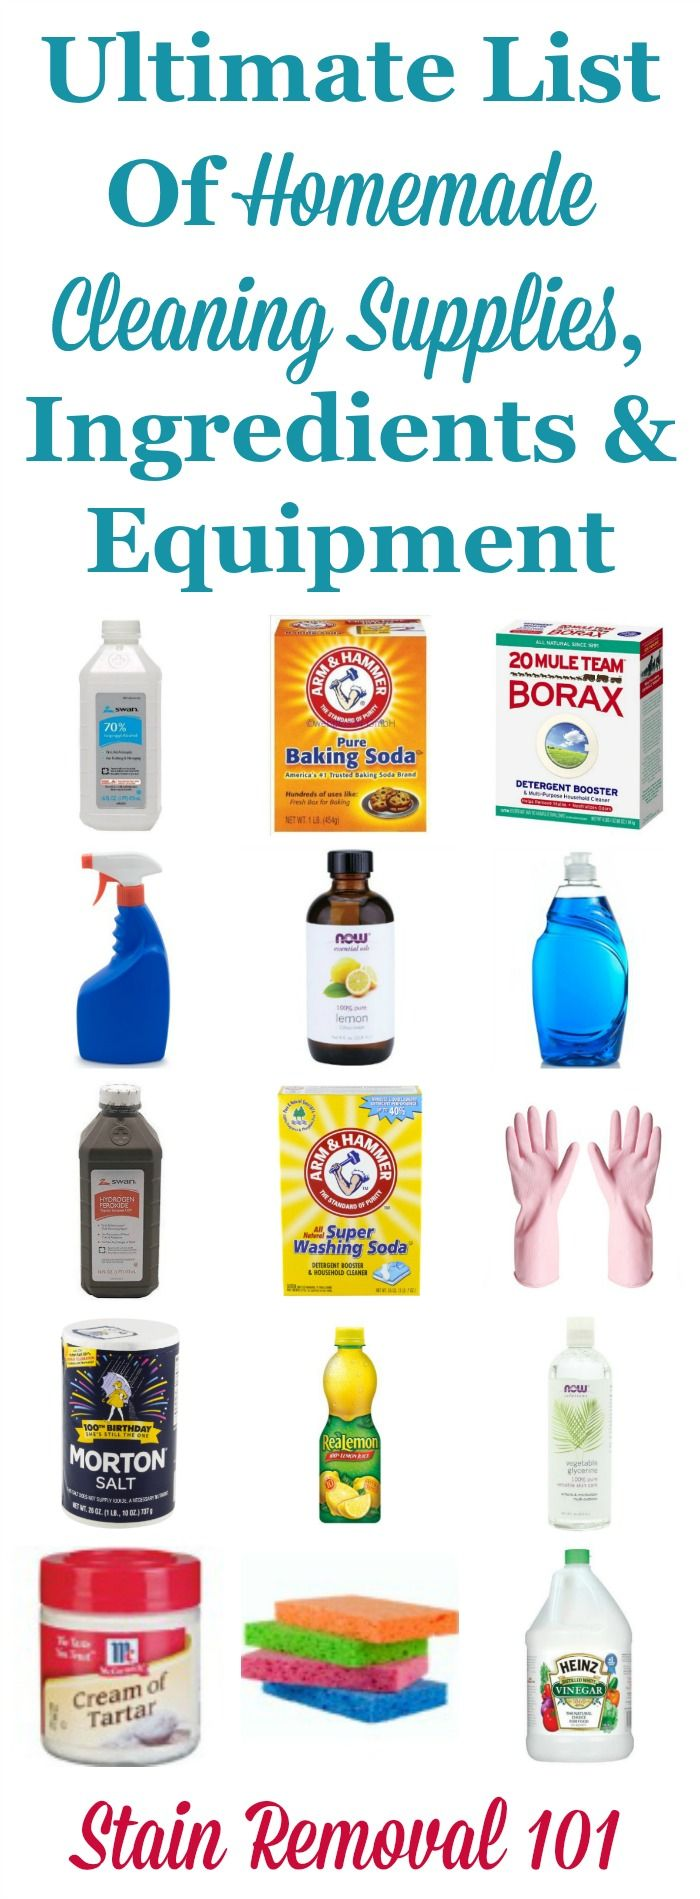 The ultimate list of homemade cleaning supplies  ingredients. 25  unique Cleaning supplies ideas on Pinterest   Organize